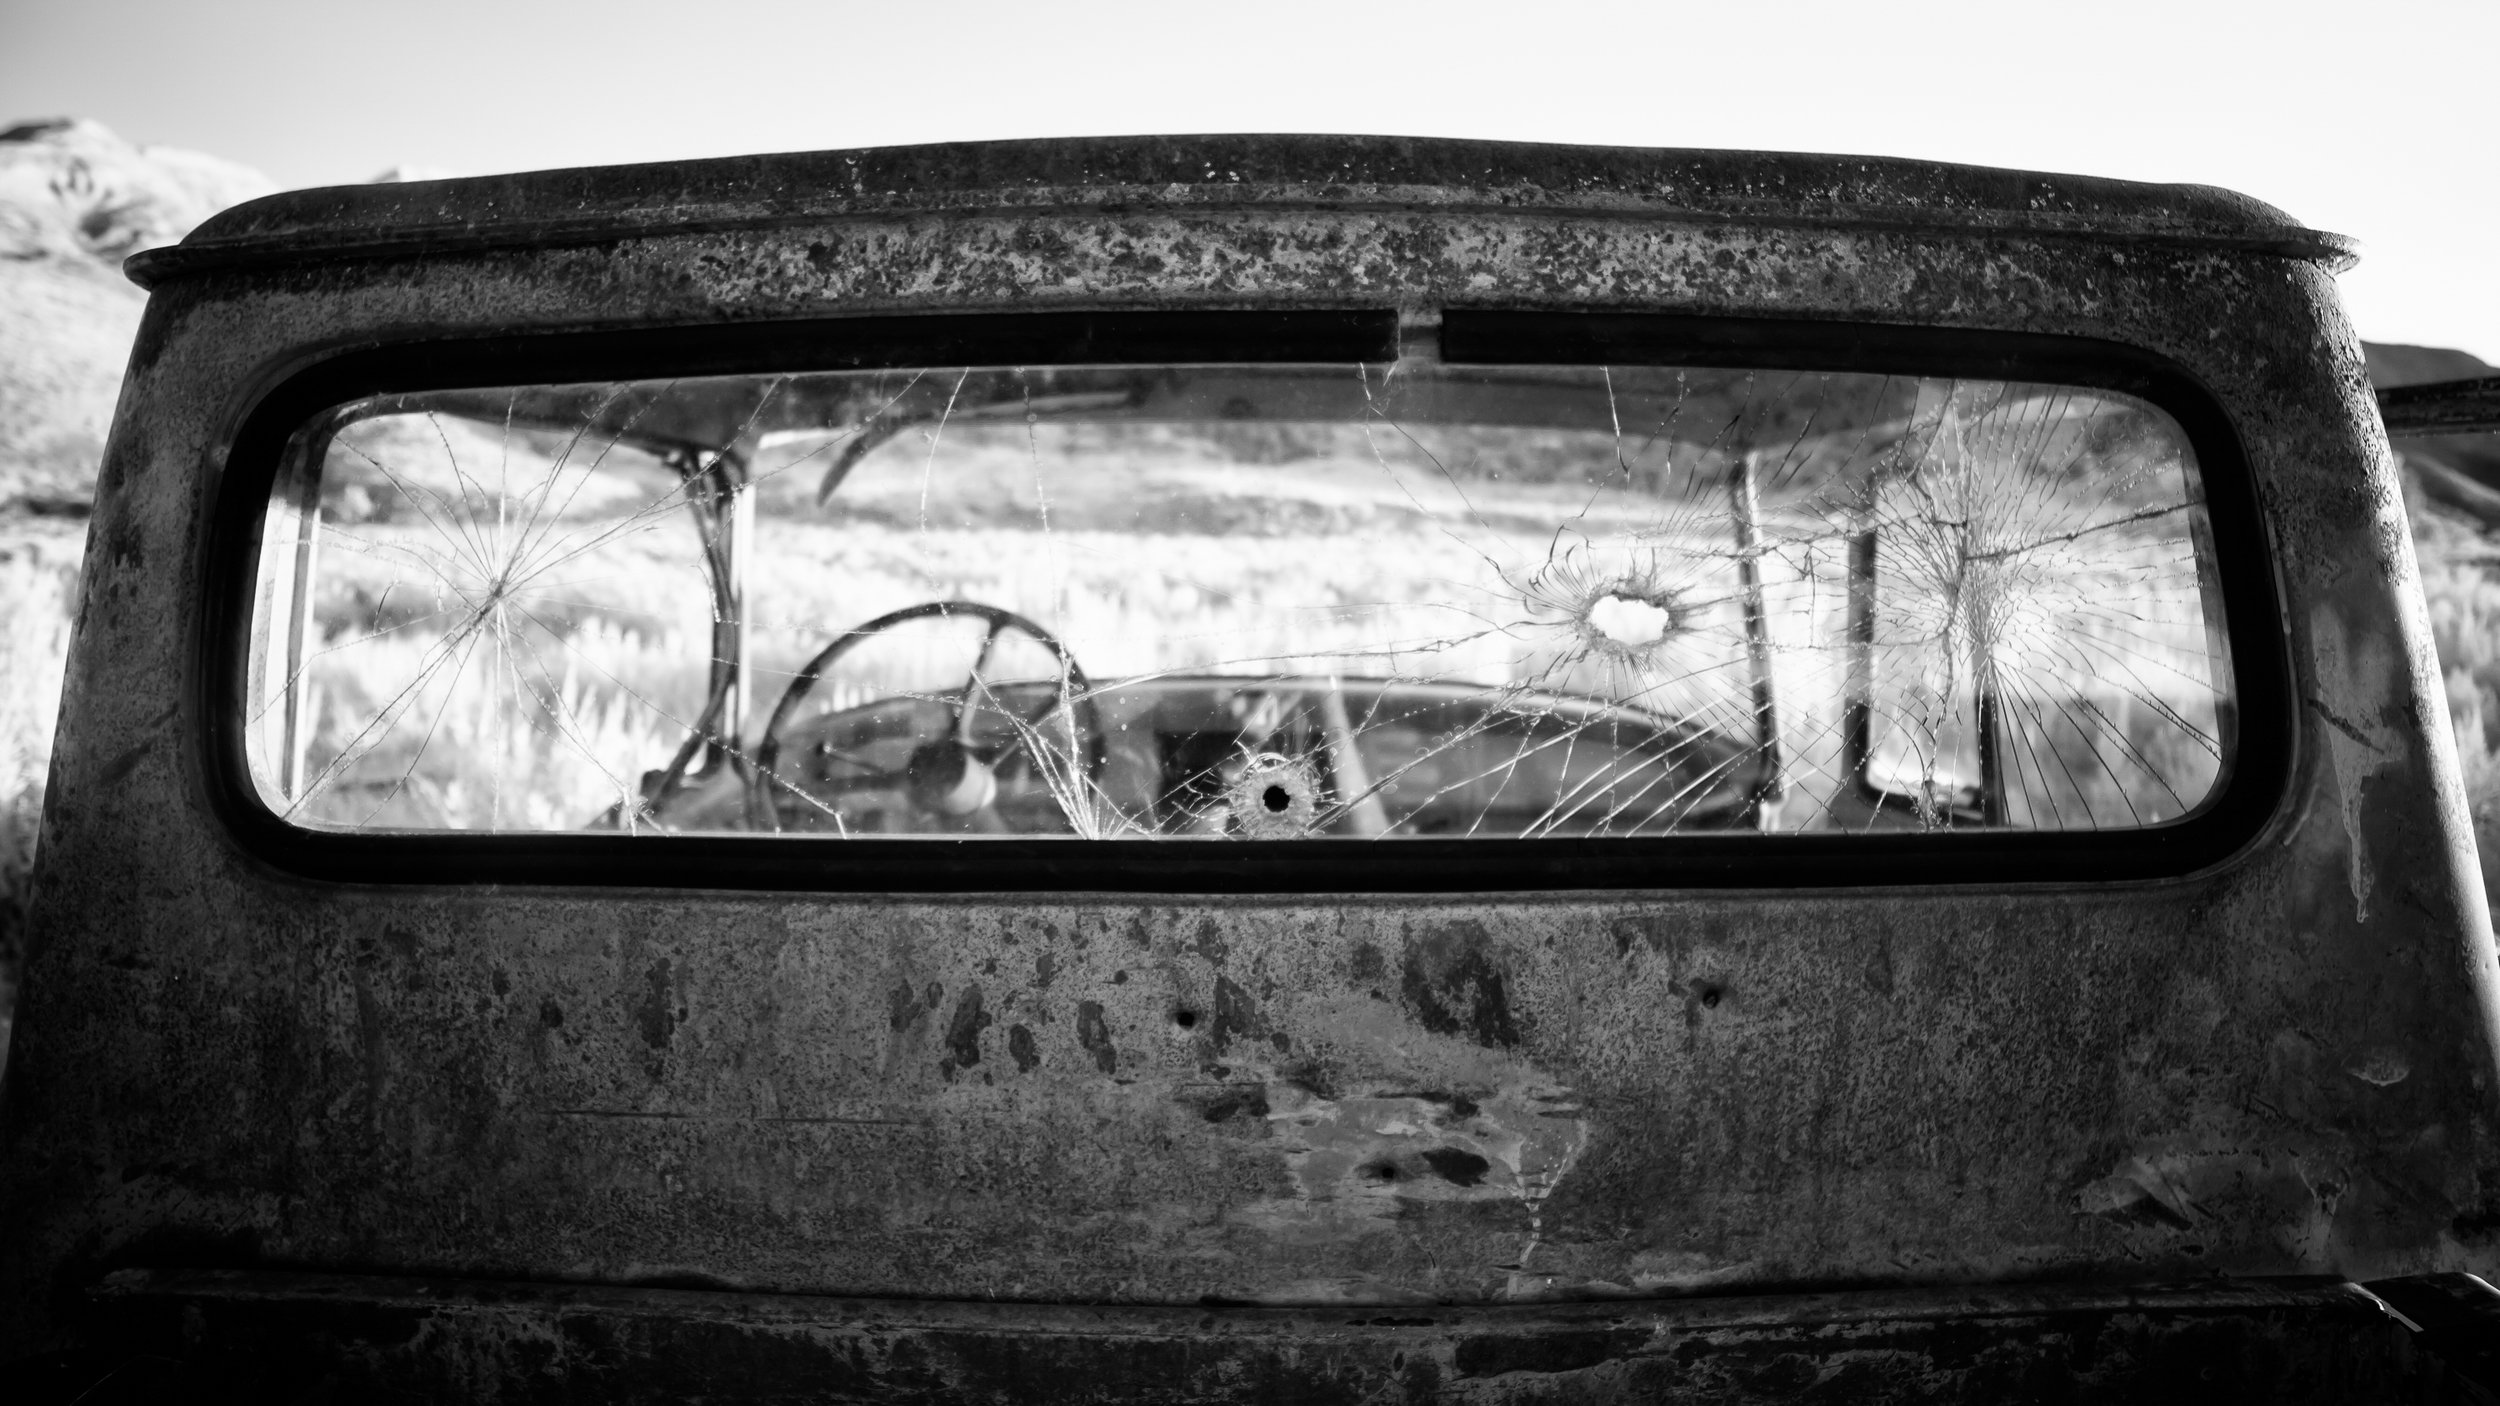 Old Truck at Airstrip in Infrared